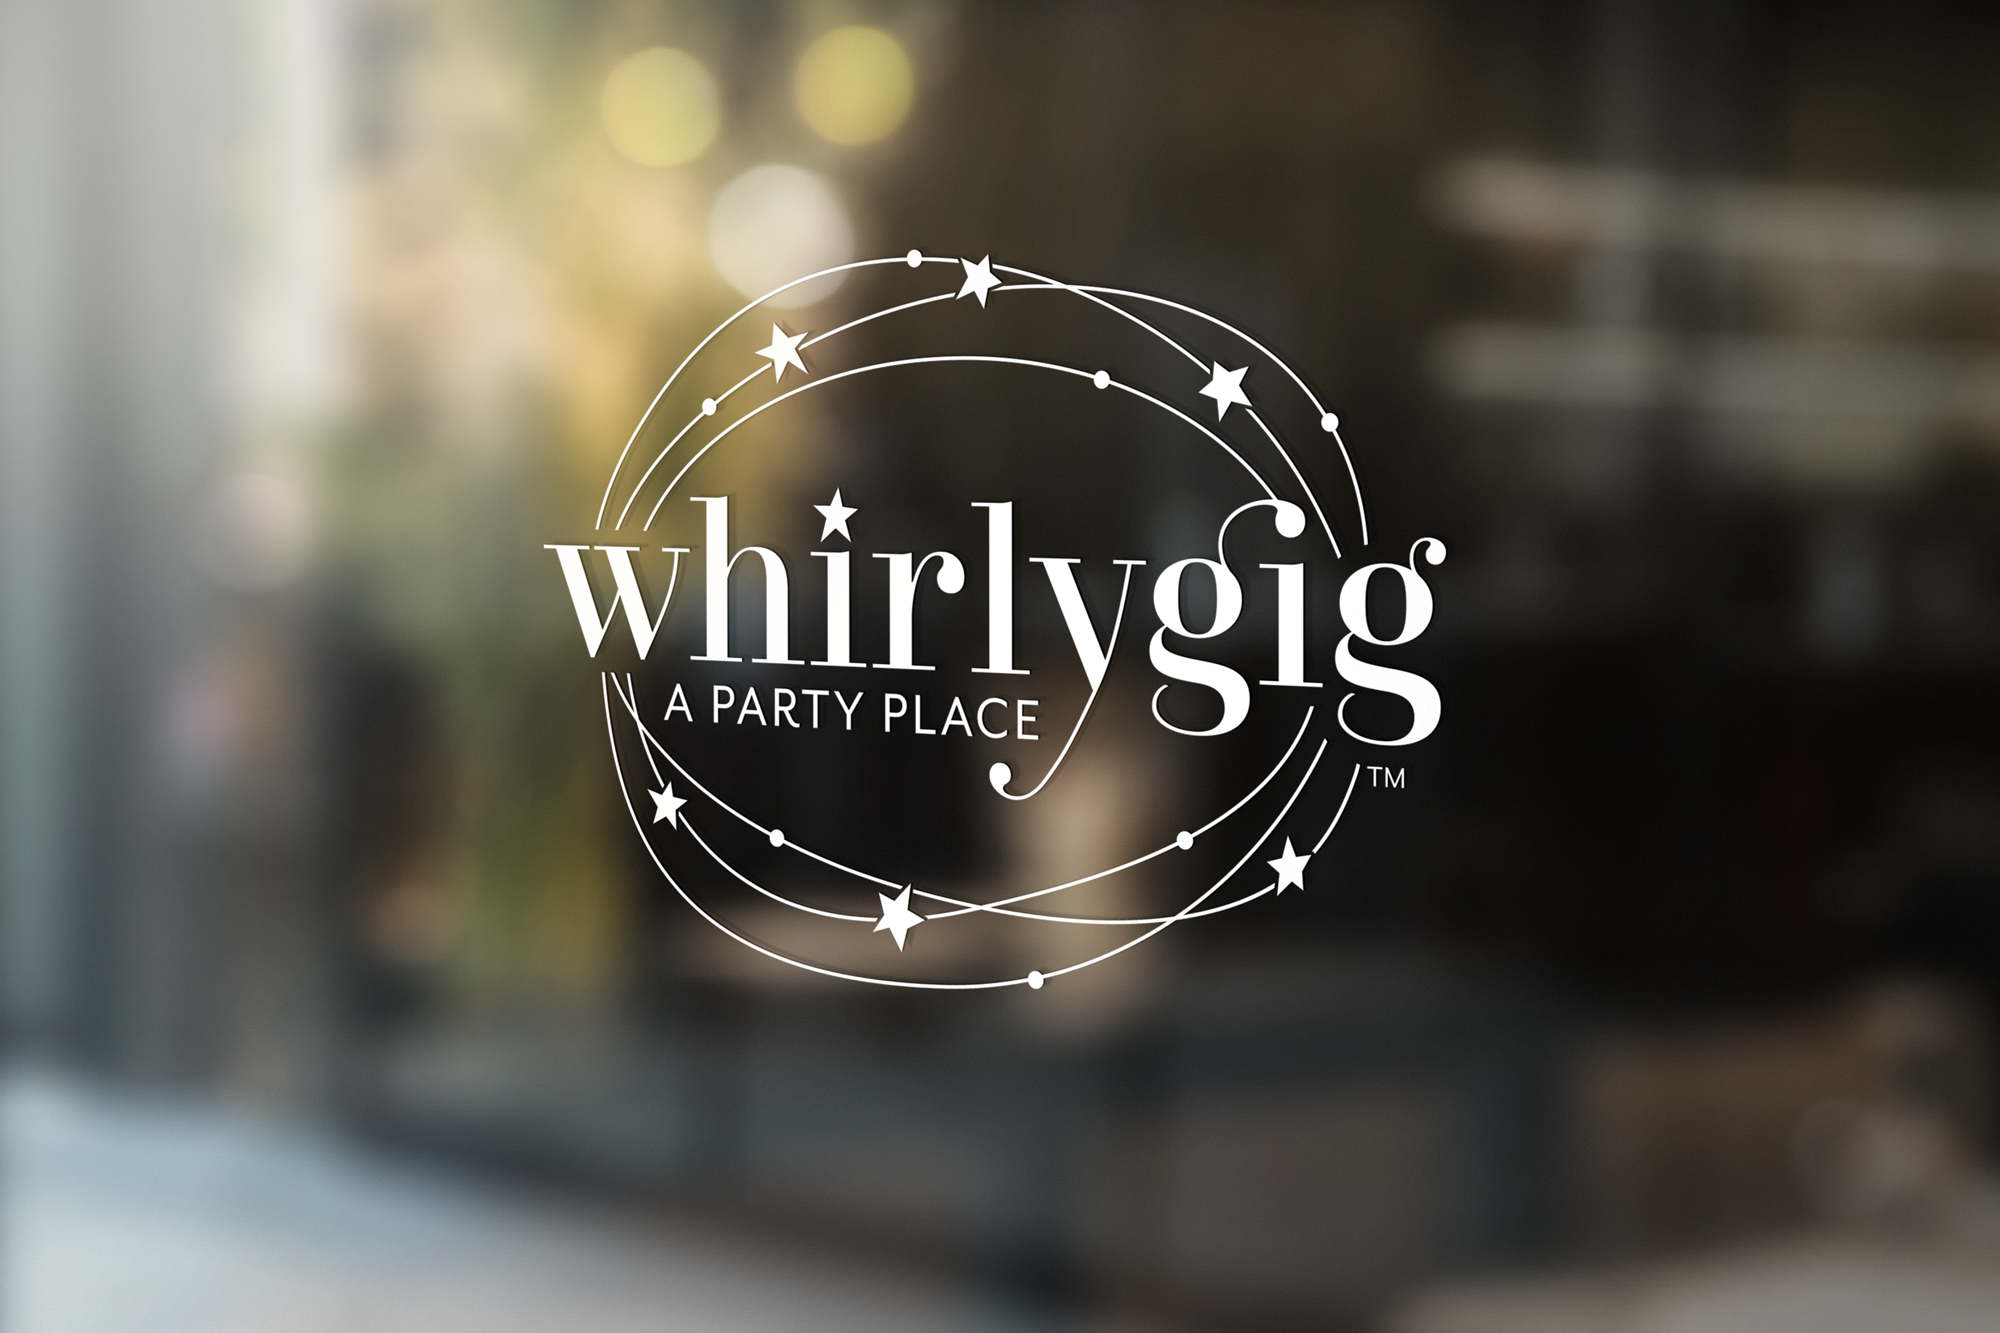 Whirlygig Brand Identity Design | Curious & Co. Creative